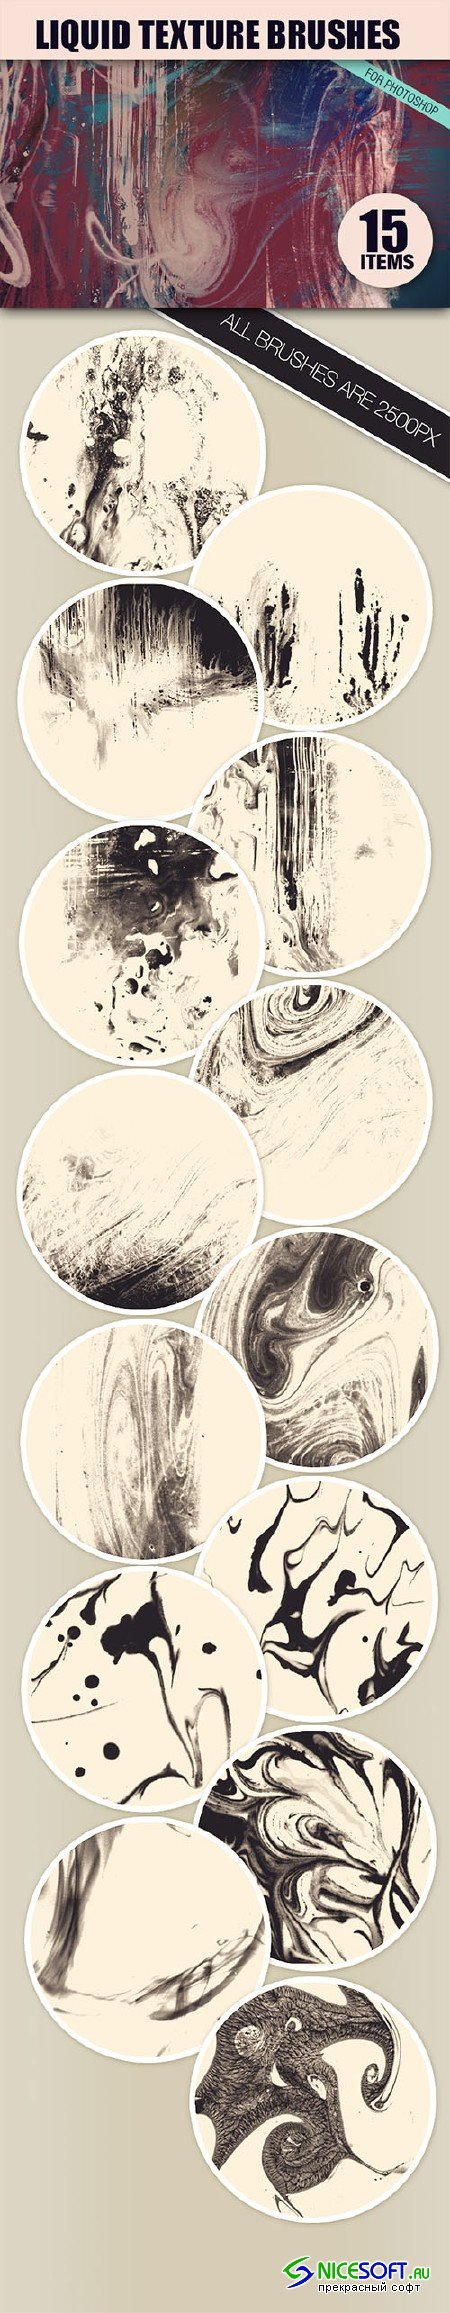 Designtnt - Liquid Photoshop Brushes Set 1